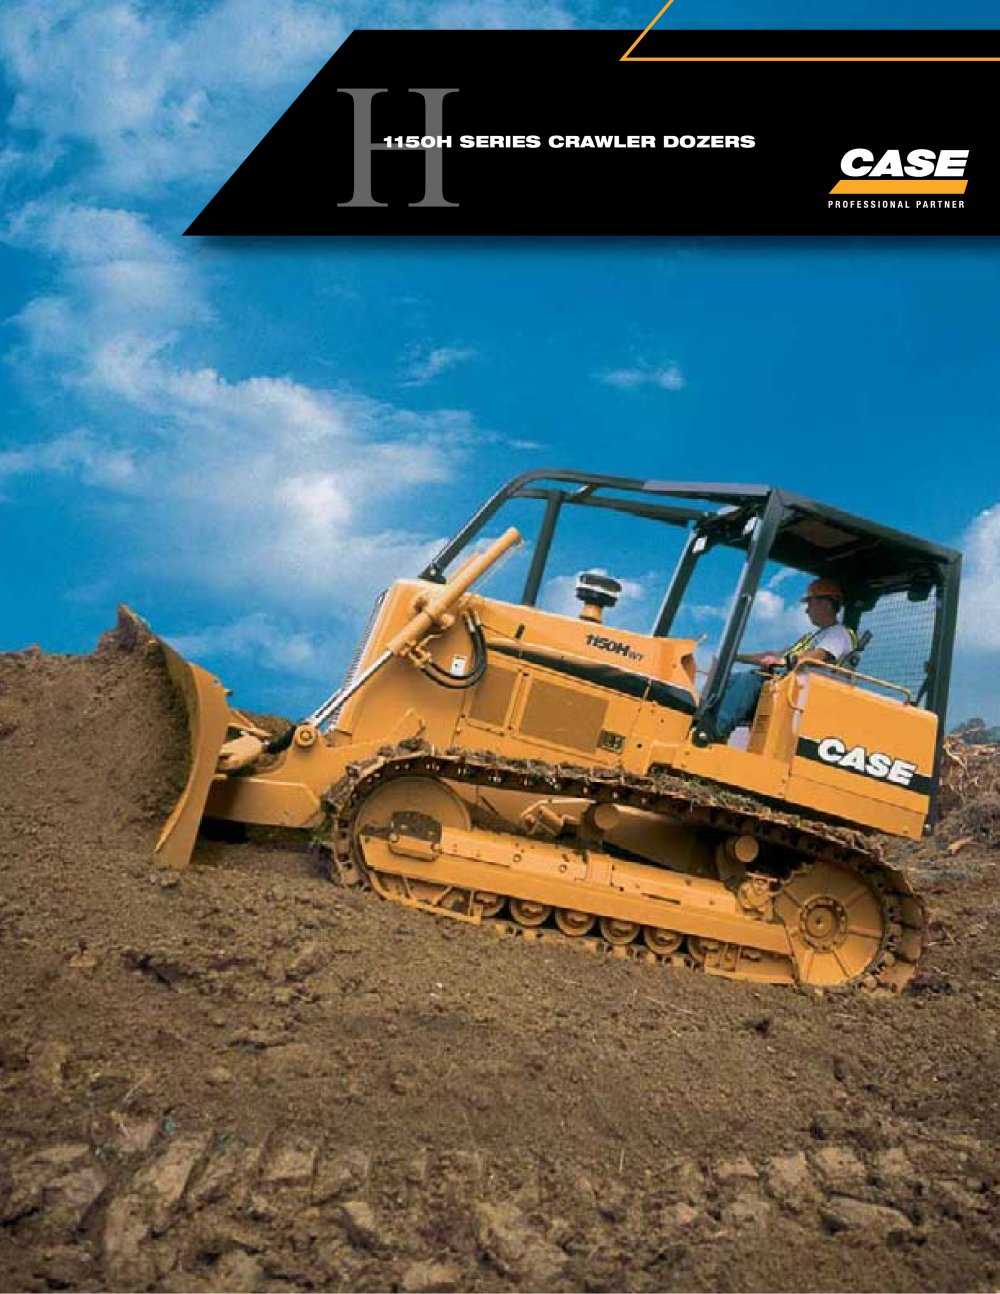 Crawler Dozers - 1150H Brochure - 1 / 8 Pages